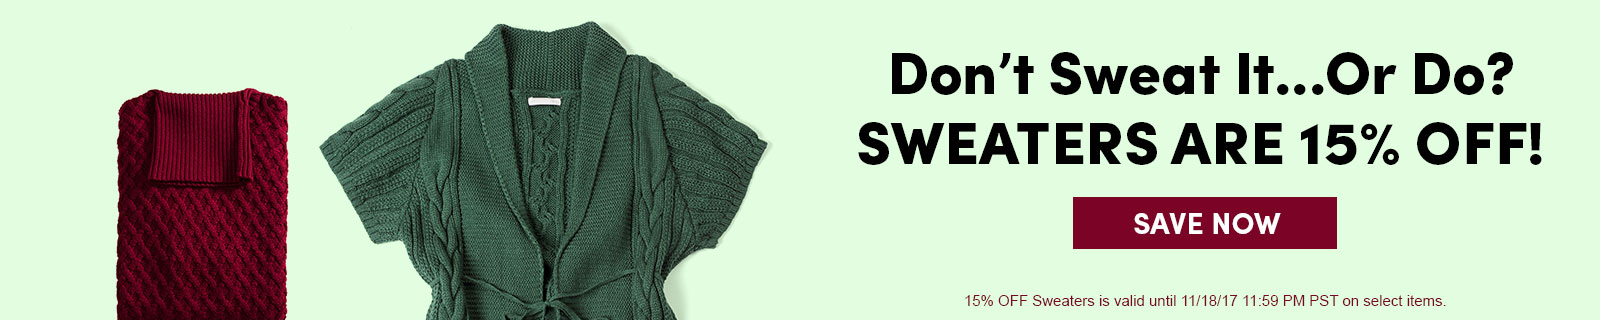 Don't Sweat It...Or Do? Sweaters are 15% Off! [Save now]